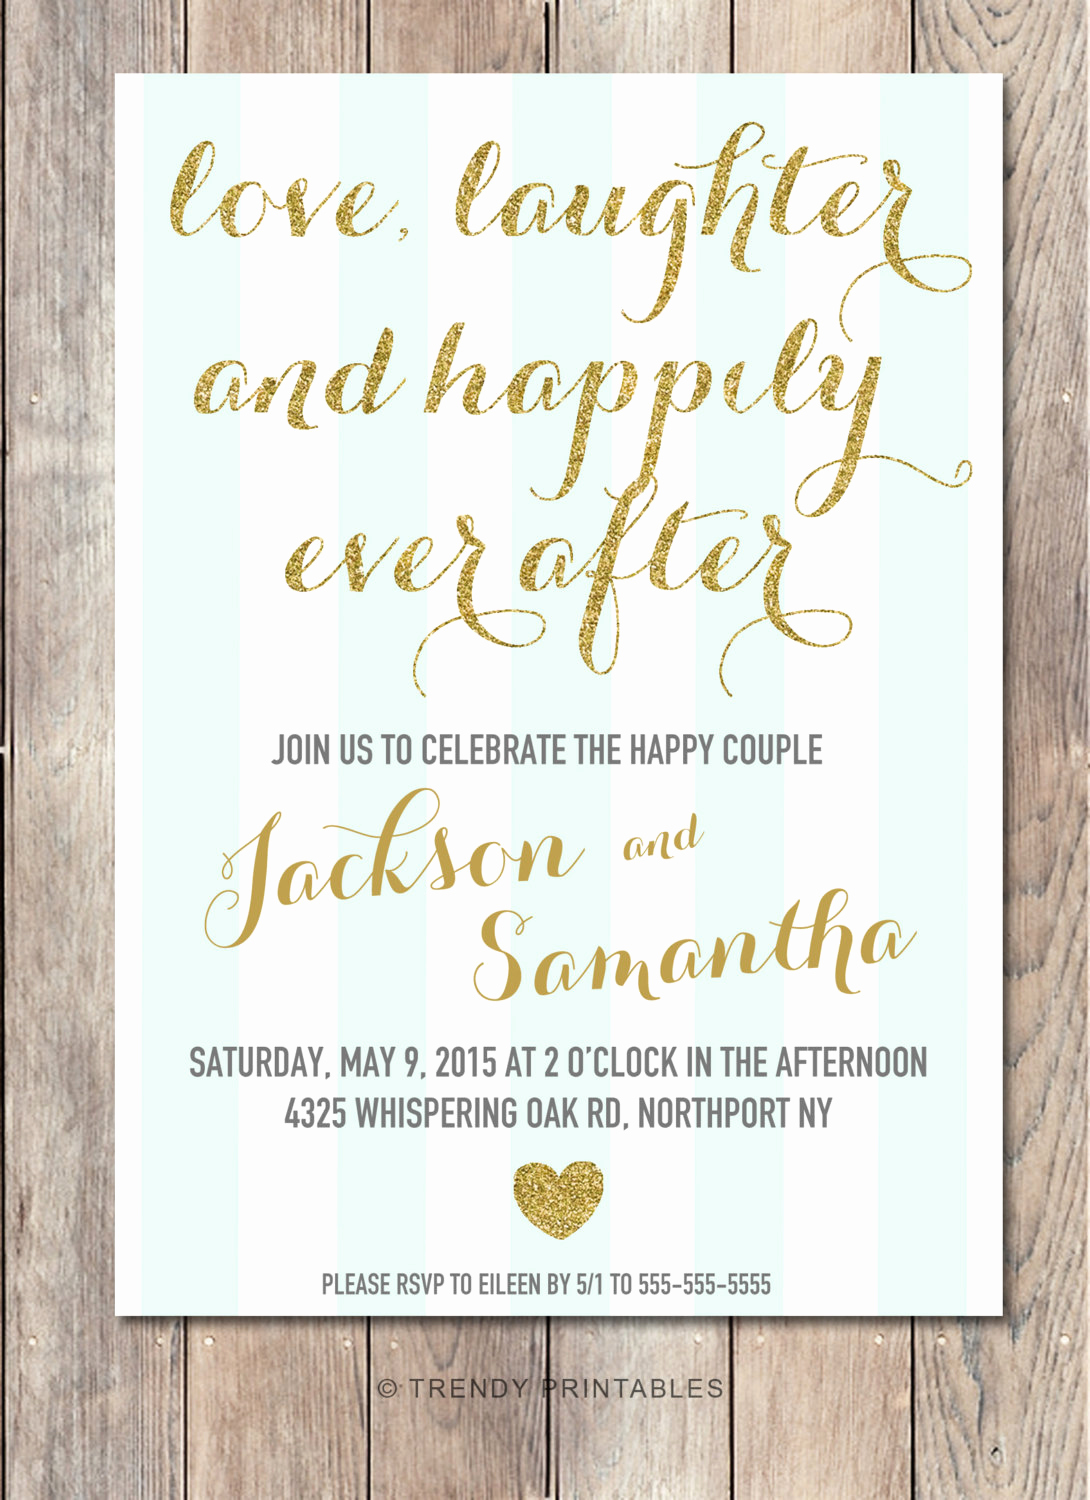 Engagment Party Invitation Wording Lovely Engagement Party Invitation Printable Engagement Party